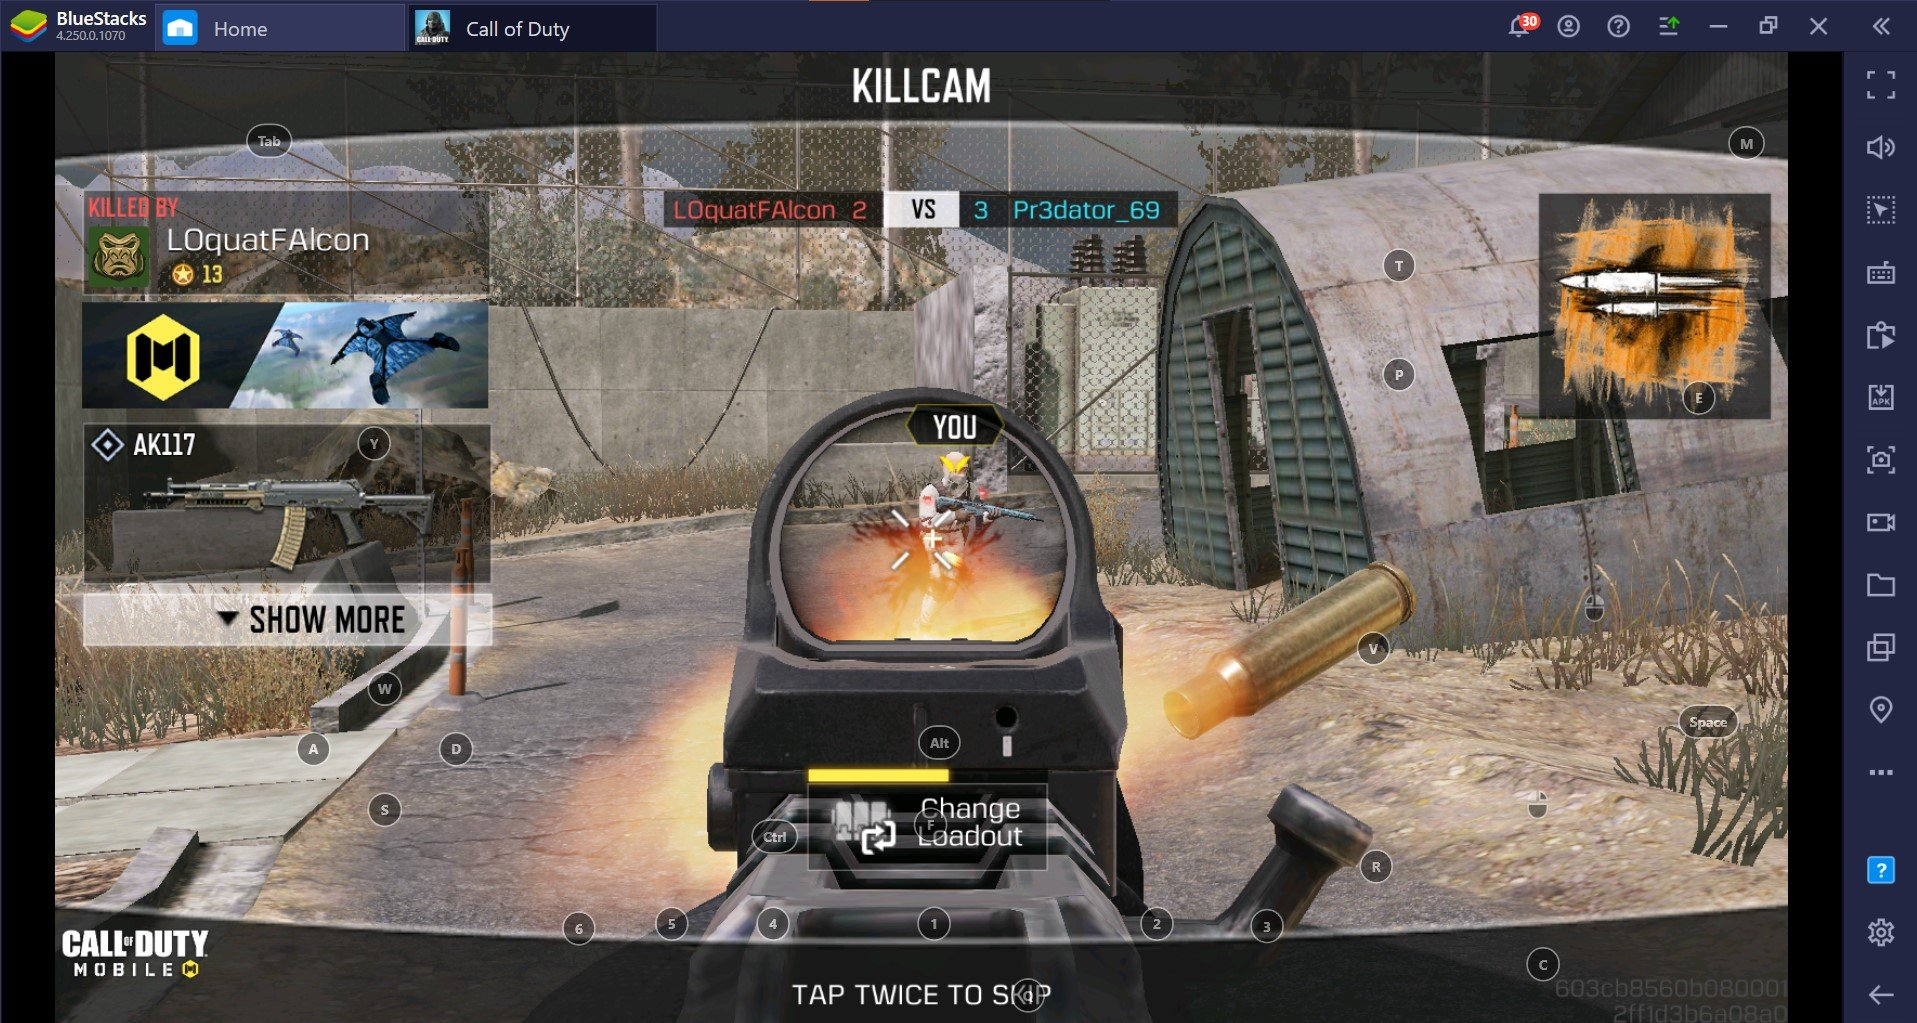 Call of Duty: Mobile On PC — Crush Everyone in Free for All